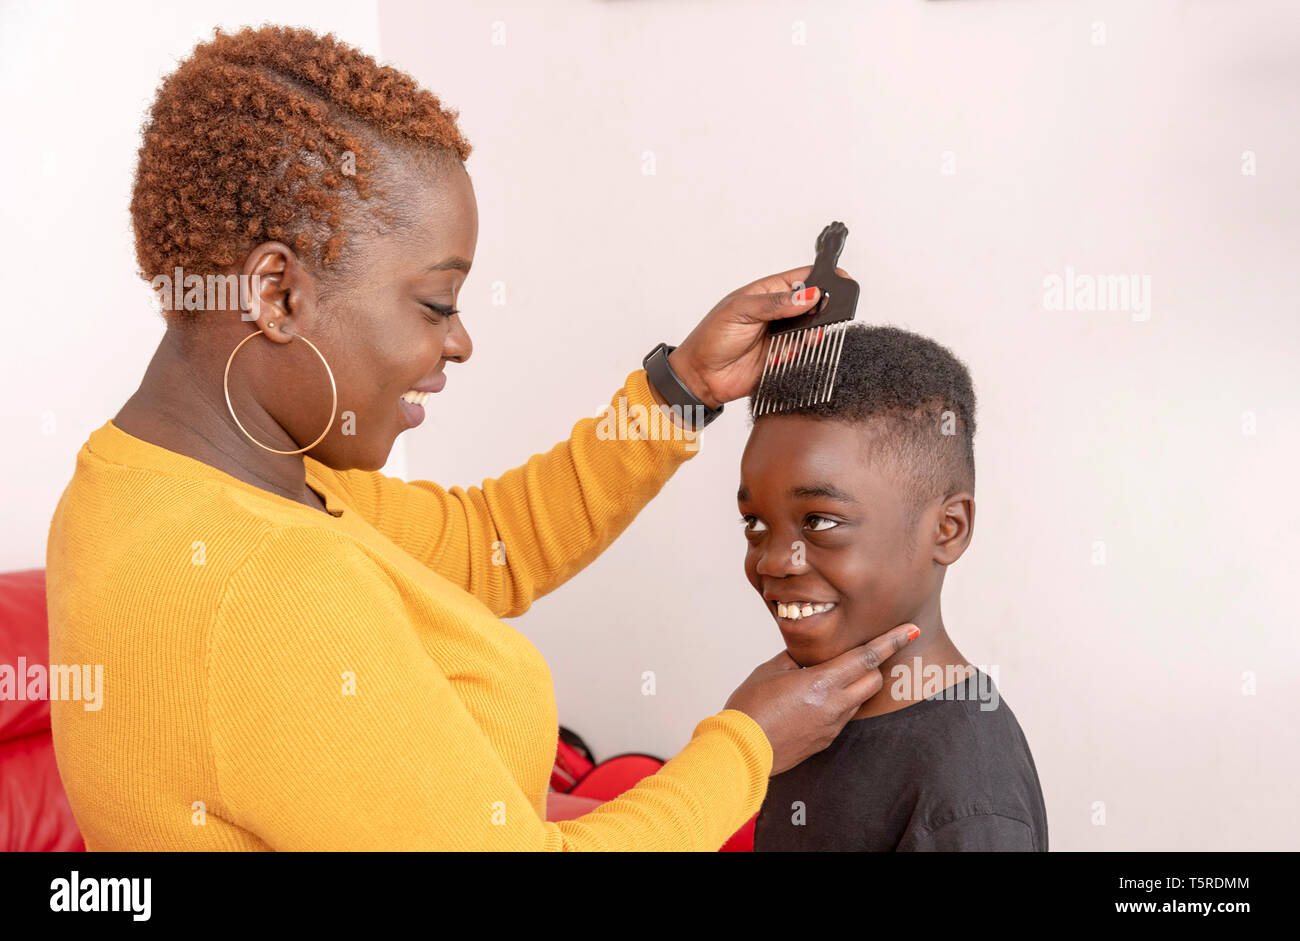 Andover, Hampshire, England, UK. April 2019. Nine year old boy with curly hair with his mother using a wide tooth afro comb for his hair. Stock Photo